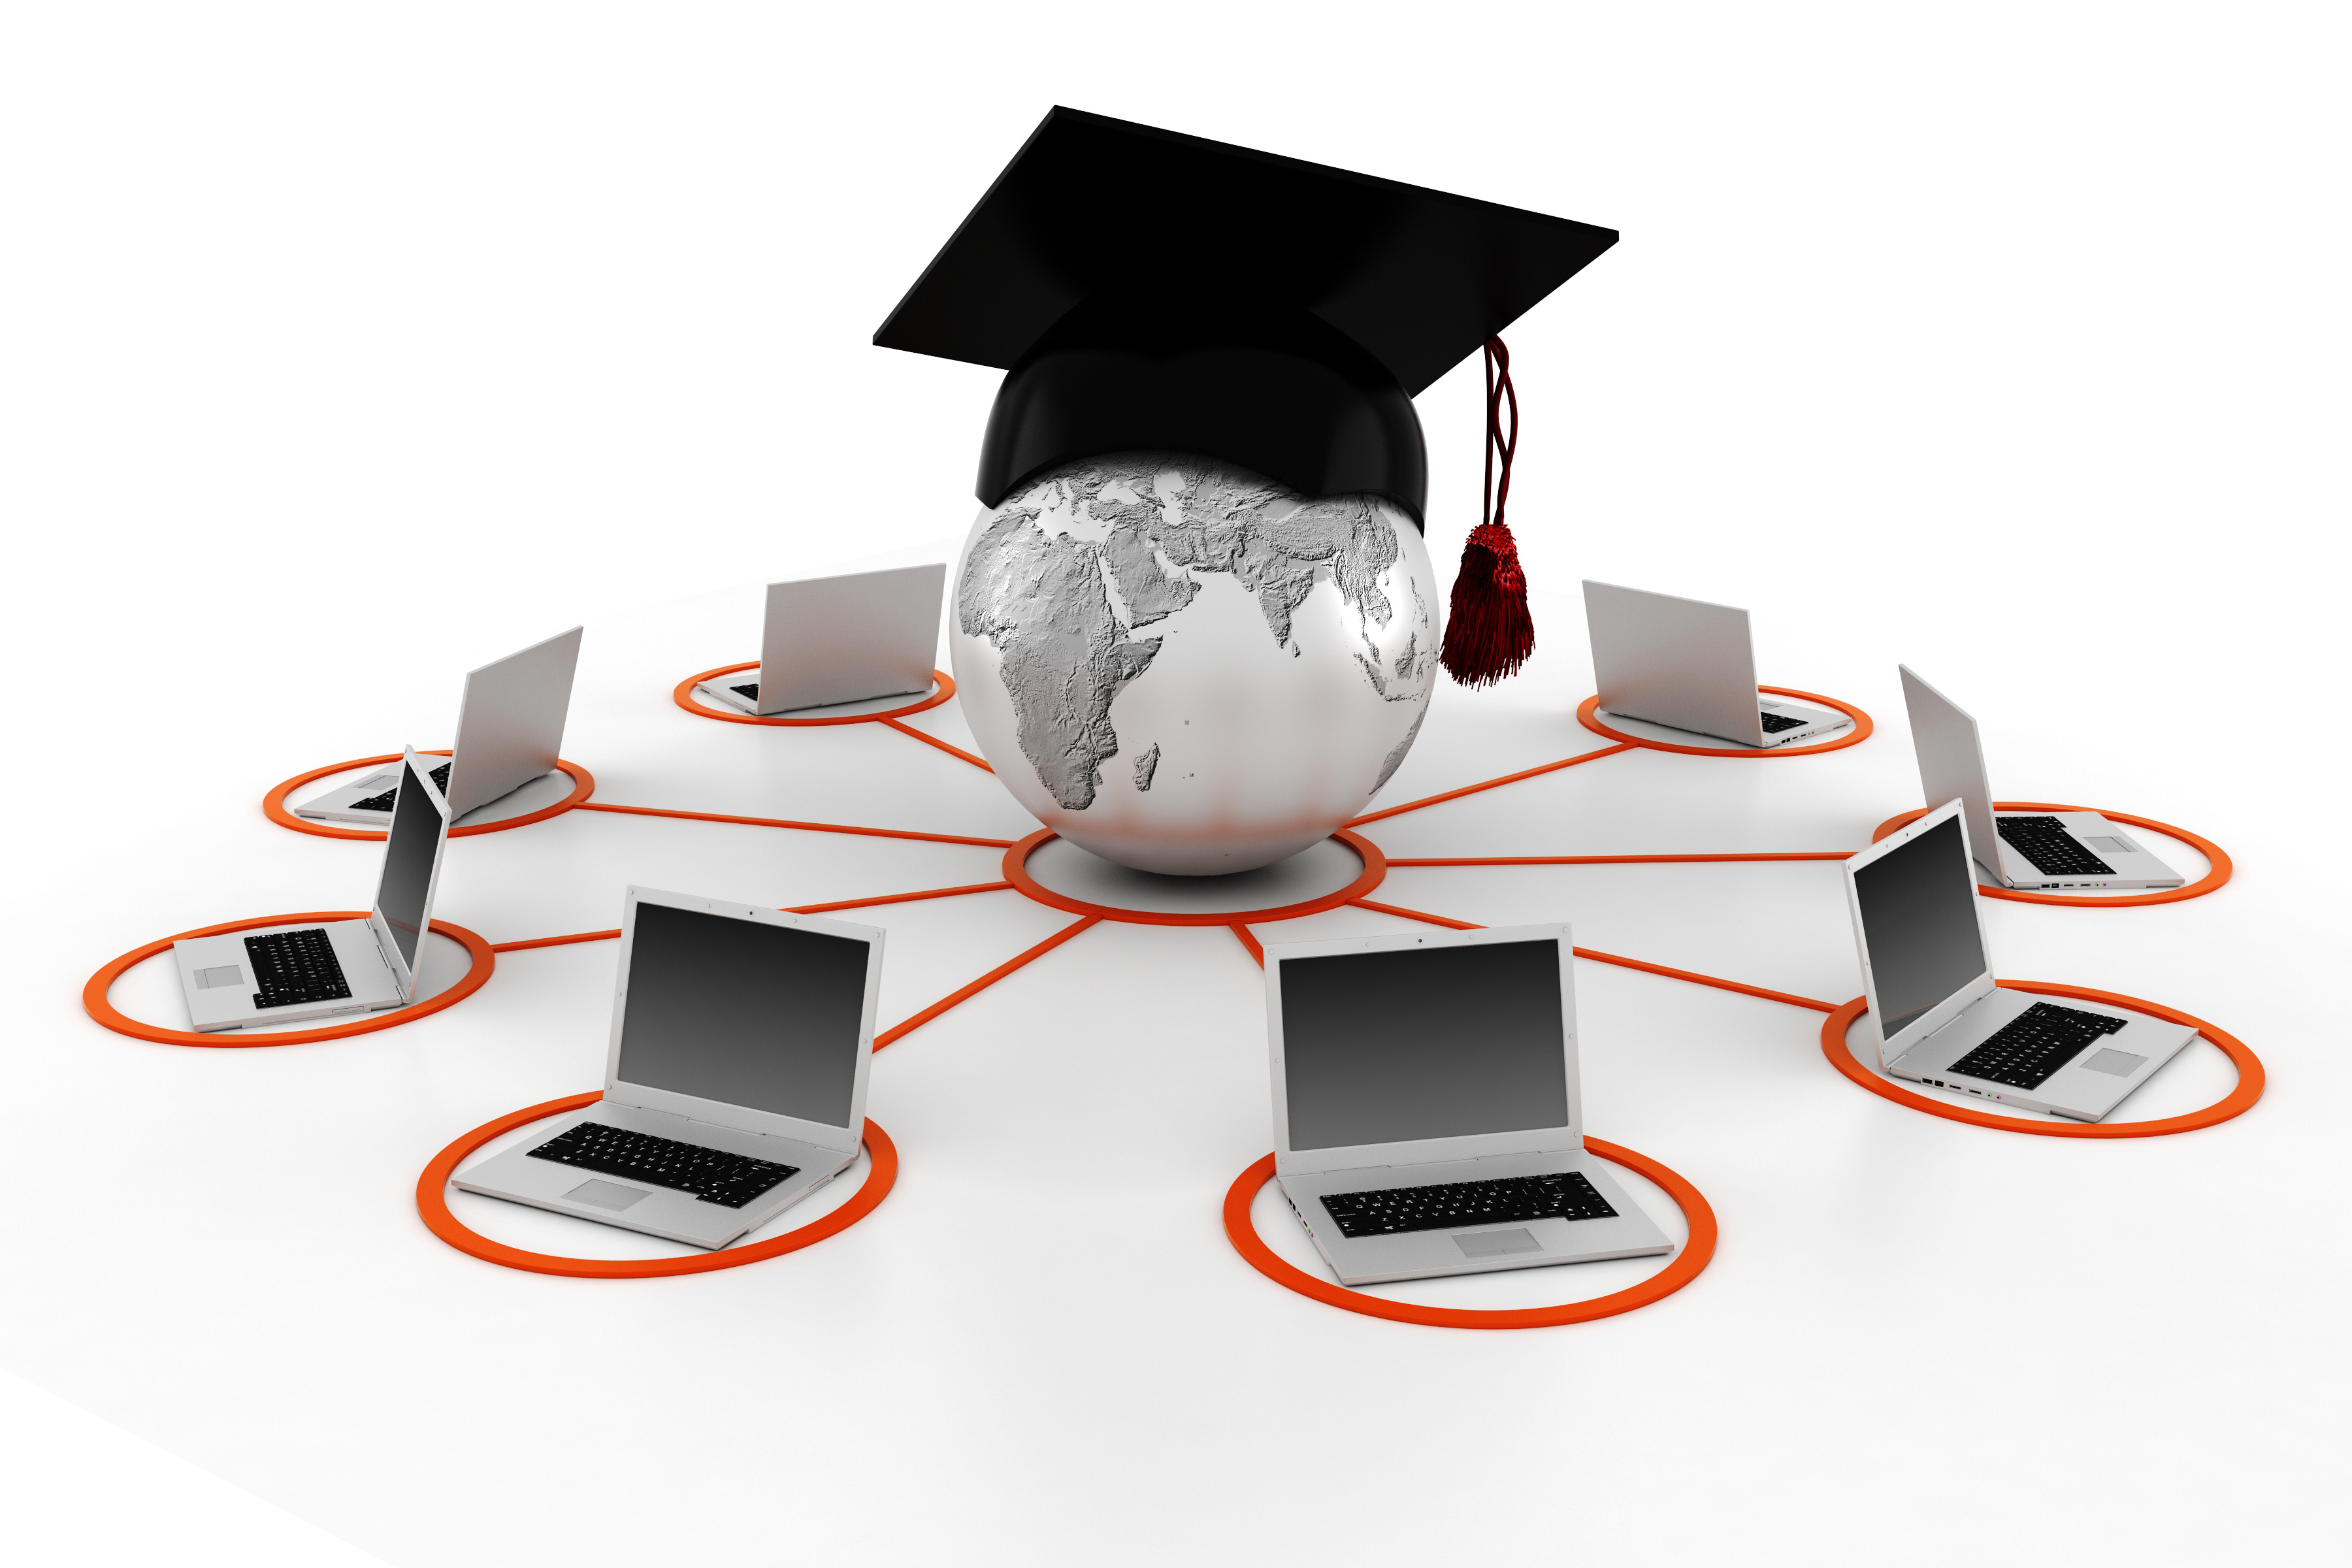 online schools Online education programs at devry online college courses & degree programs for associate, bachelor's & master's degrees across business, tech, and health programs.